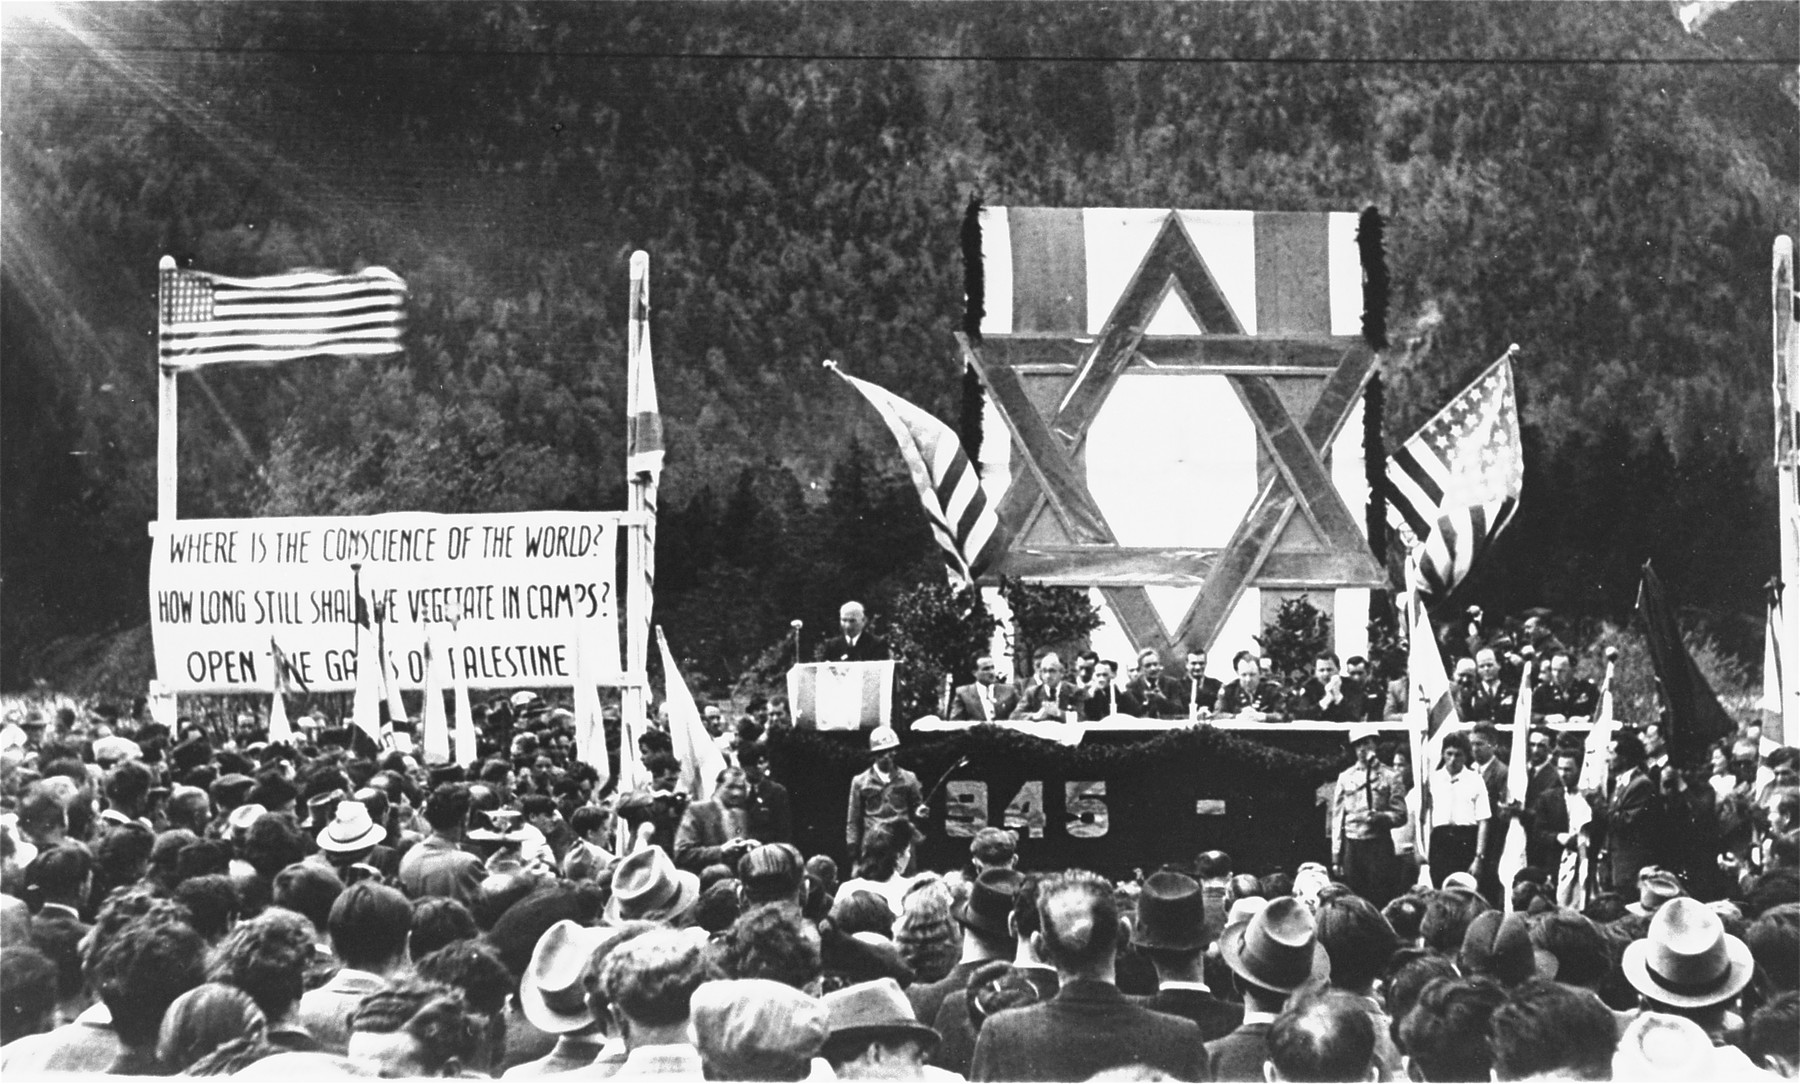 David Treger, President of the Central Committee of the Liberated Jews in Bavaria, delivers an address at a public meeting held in the Mittenwald displaced persons camp to protest British immigration policy in Palestine.    The banners call for free immigration to Palestine.